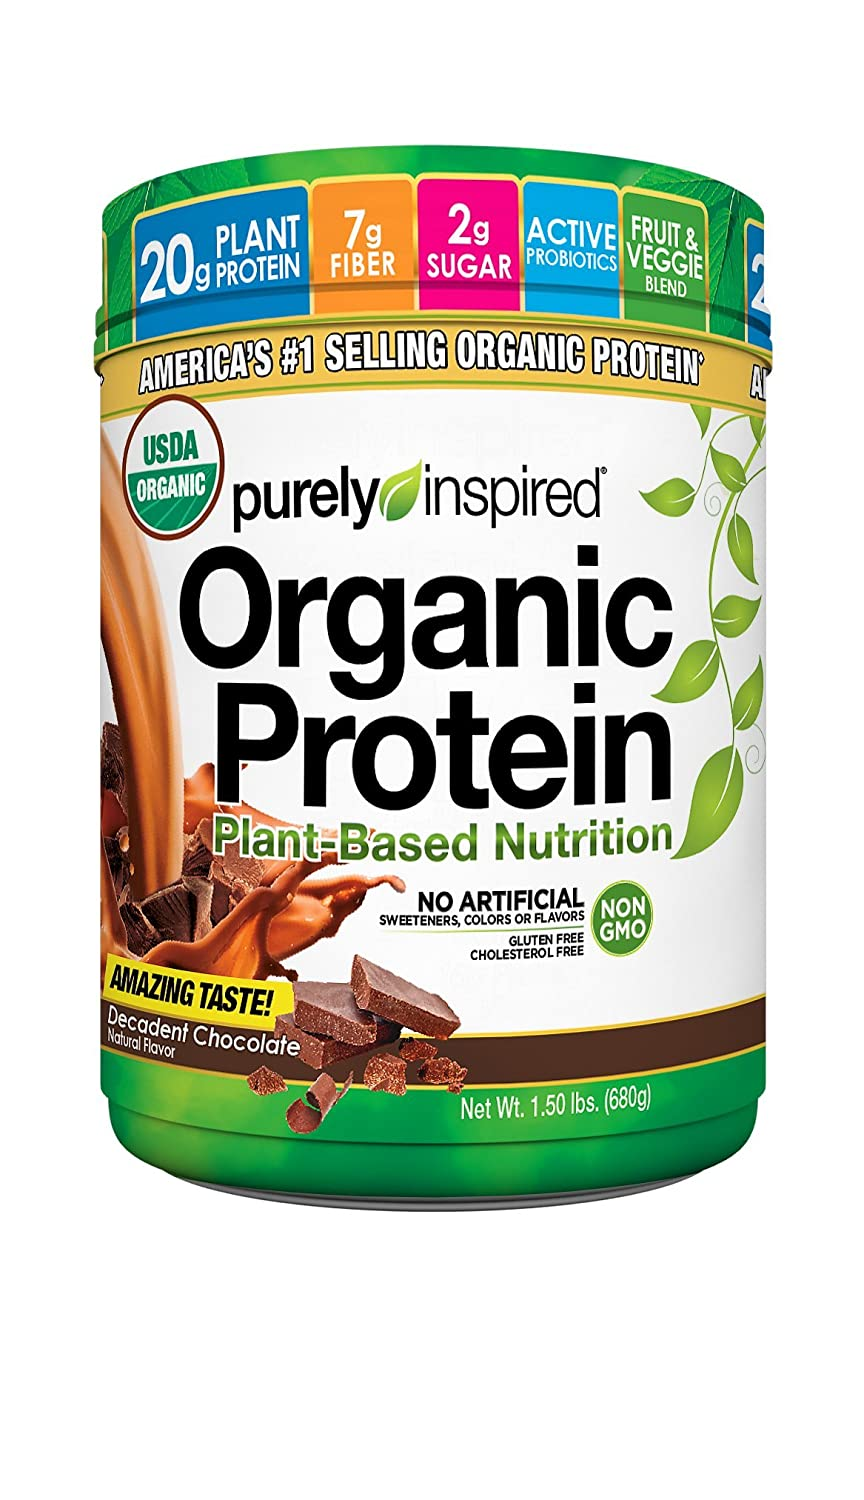 Purely Inspired Organic Protein Shake, 100% Plant Based Protein, Decadent Chocolate Flavor, 1.5lbs by Purely Inspired B00NV5FO2U